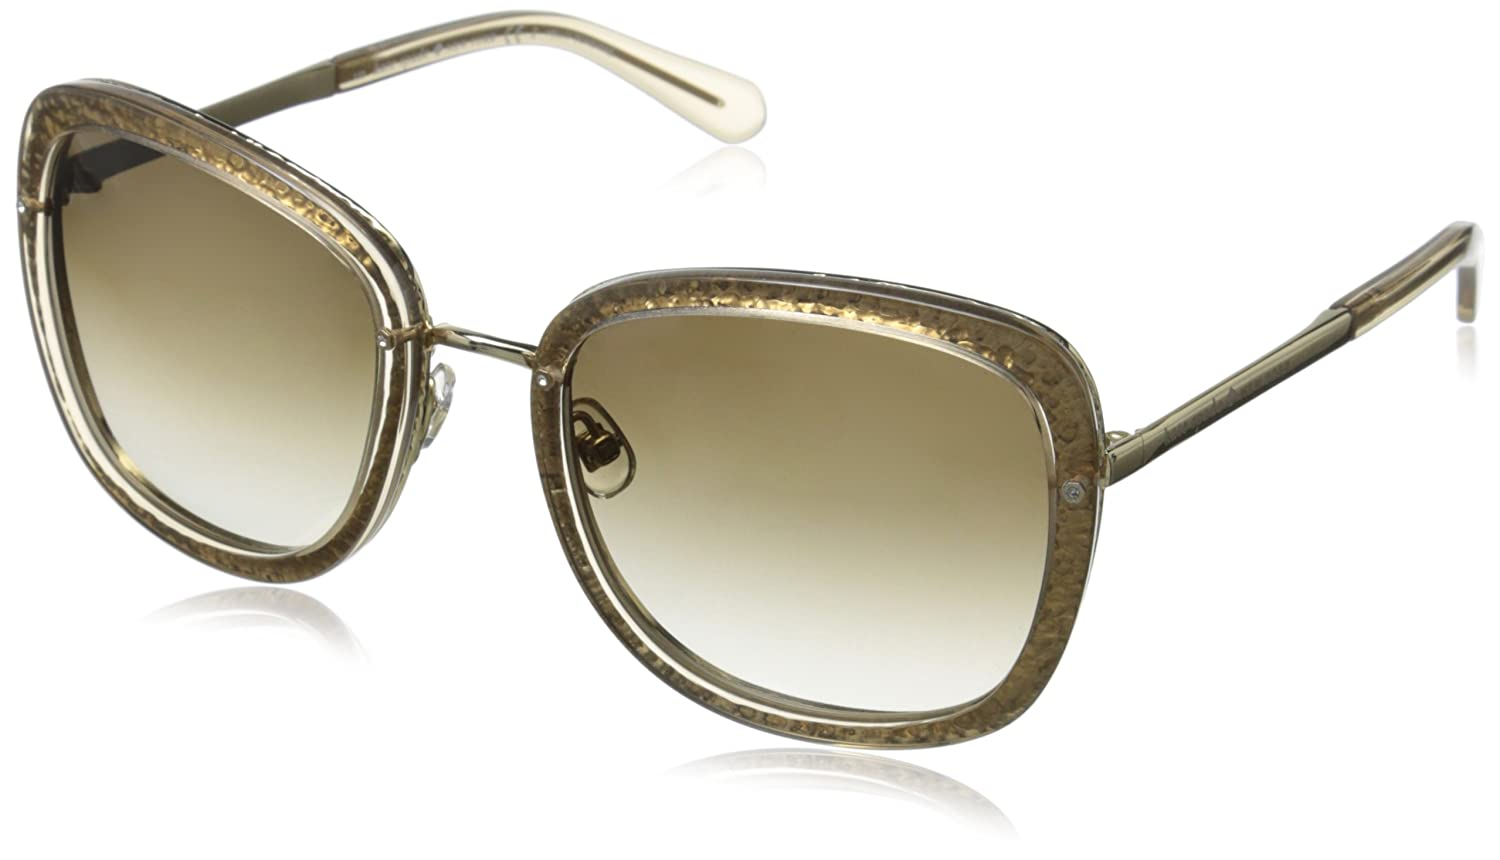 2412a3b9c0 KATE SPADE SCOTTIE S Sunglasses 0CW2 Transparent Tan 56-22-135   Amazon.co.uk  Clothing